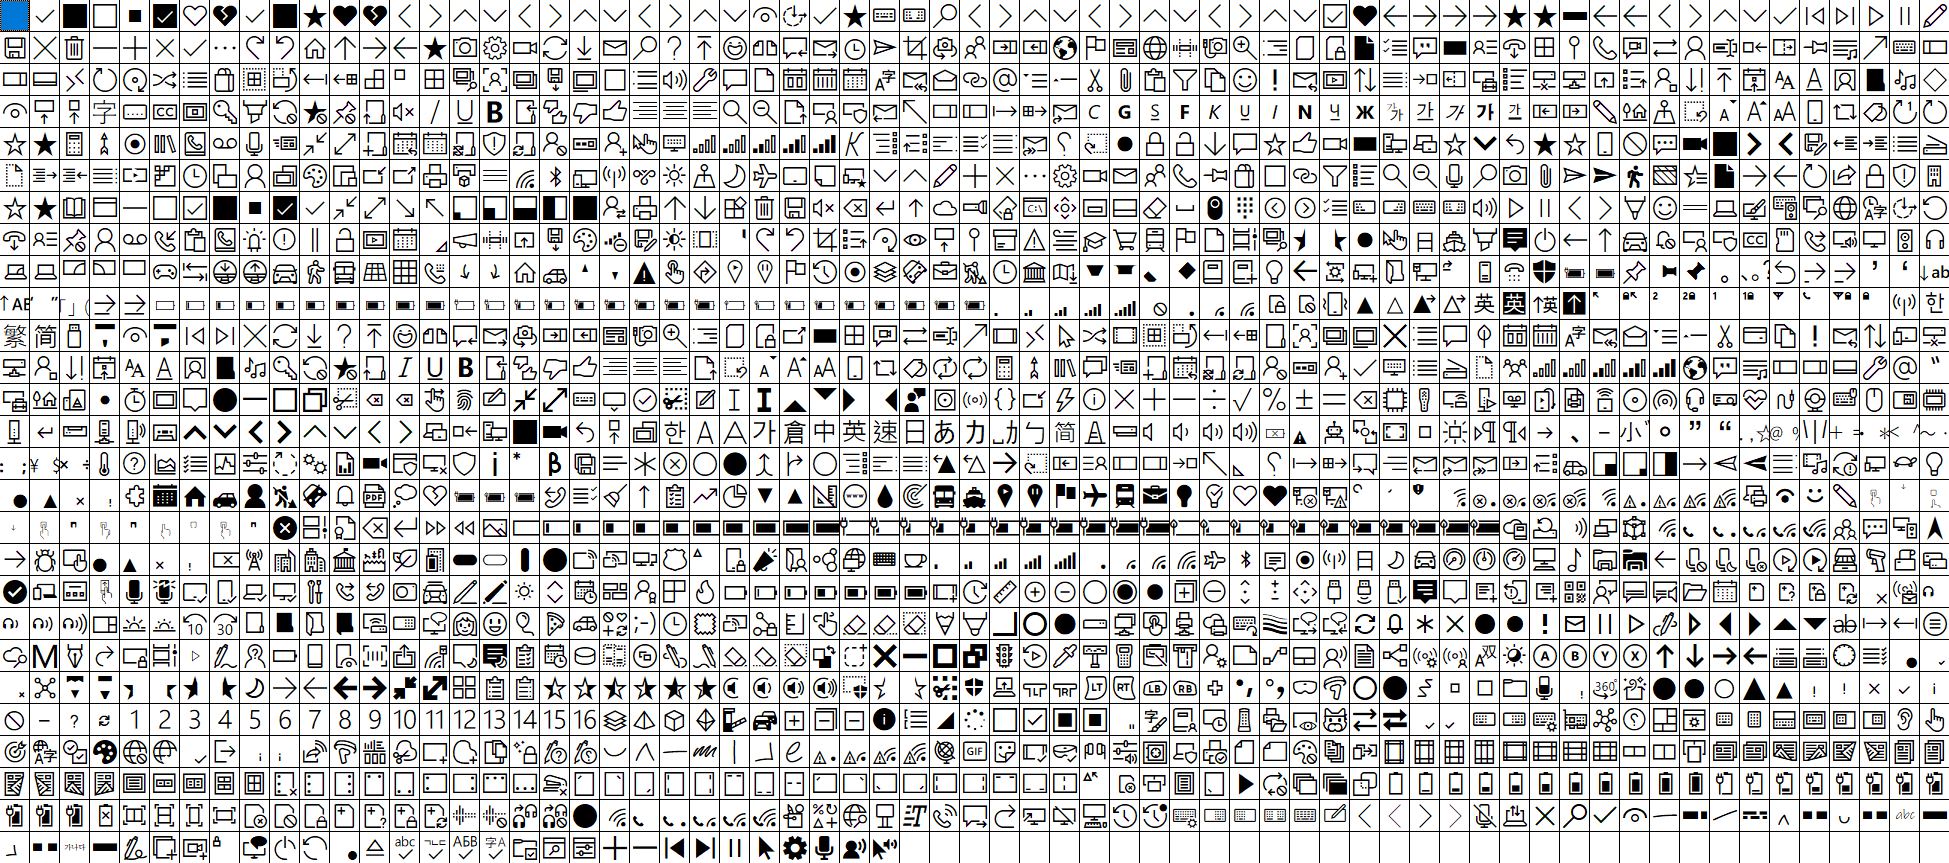 Screenshot of all MDL2 icons available as a grid of very small images